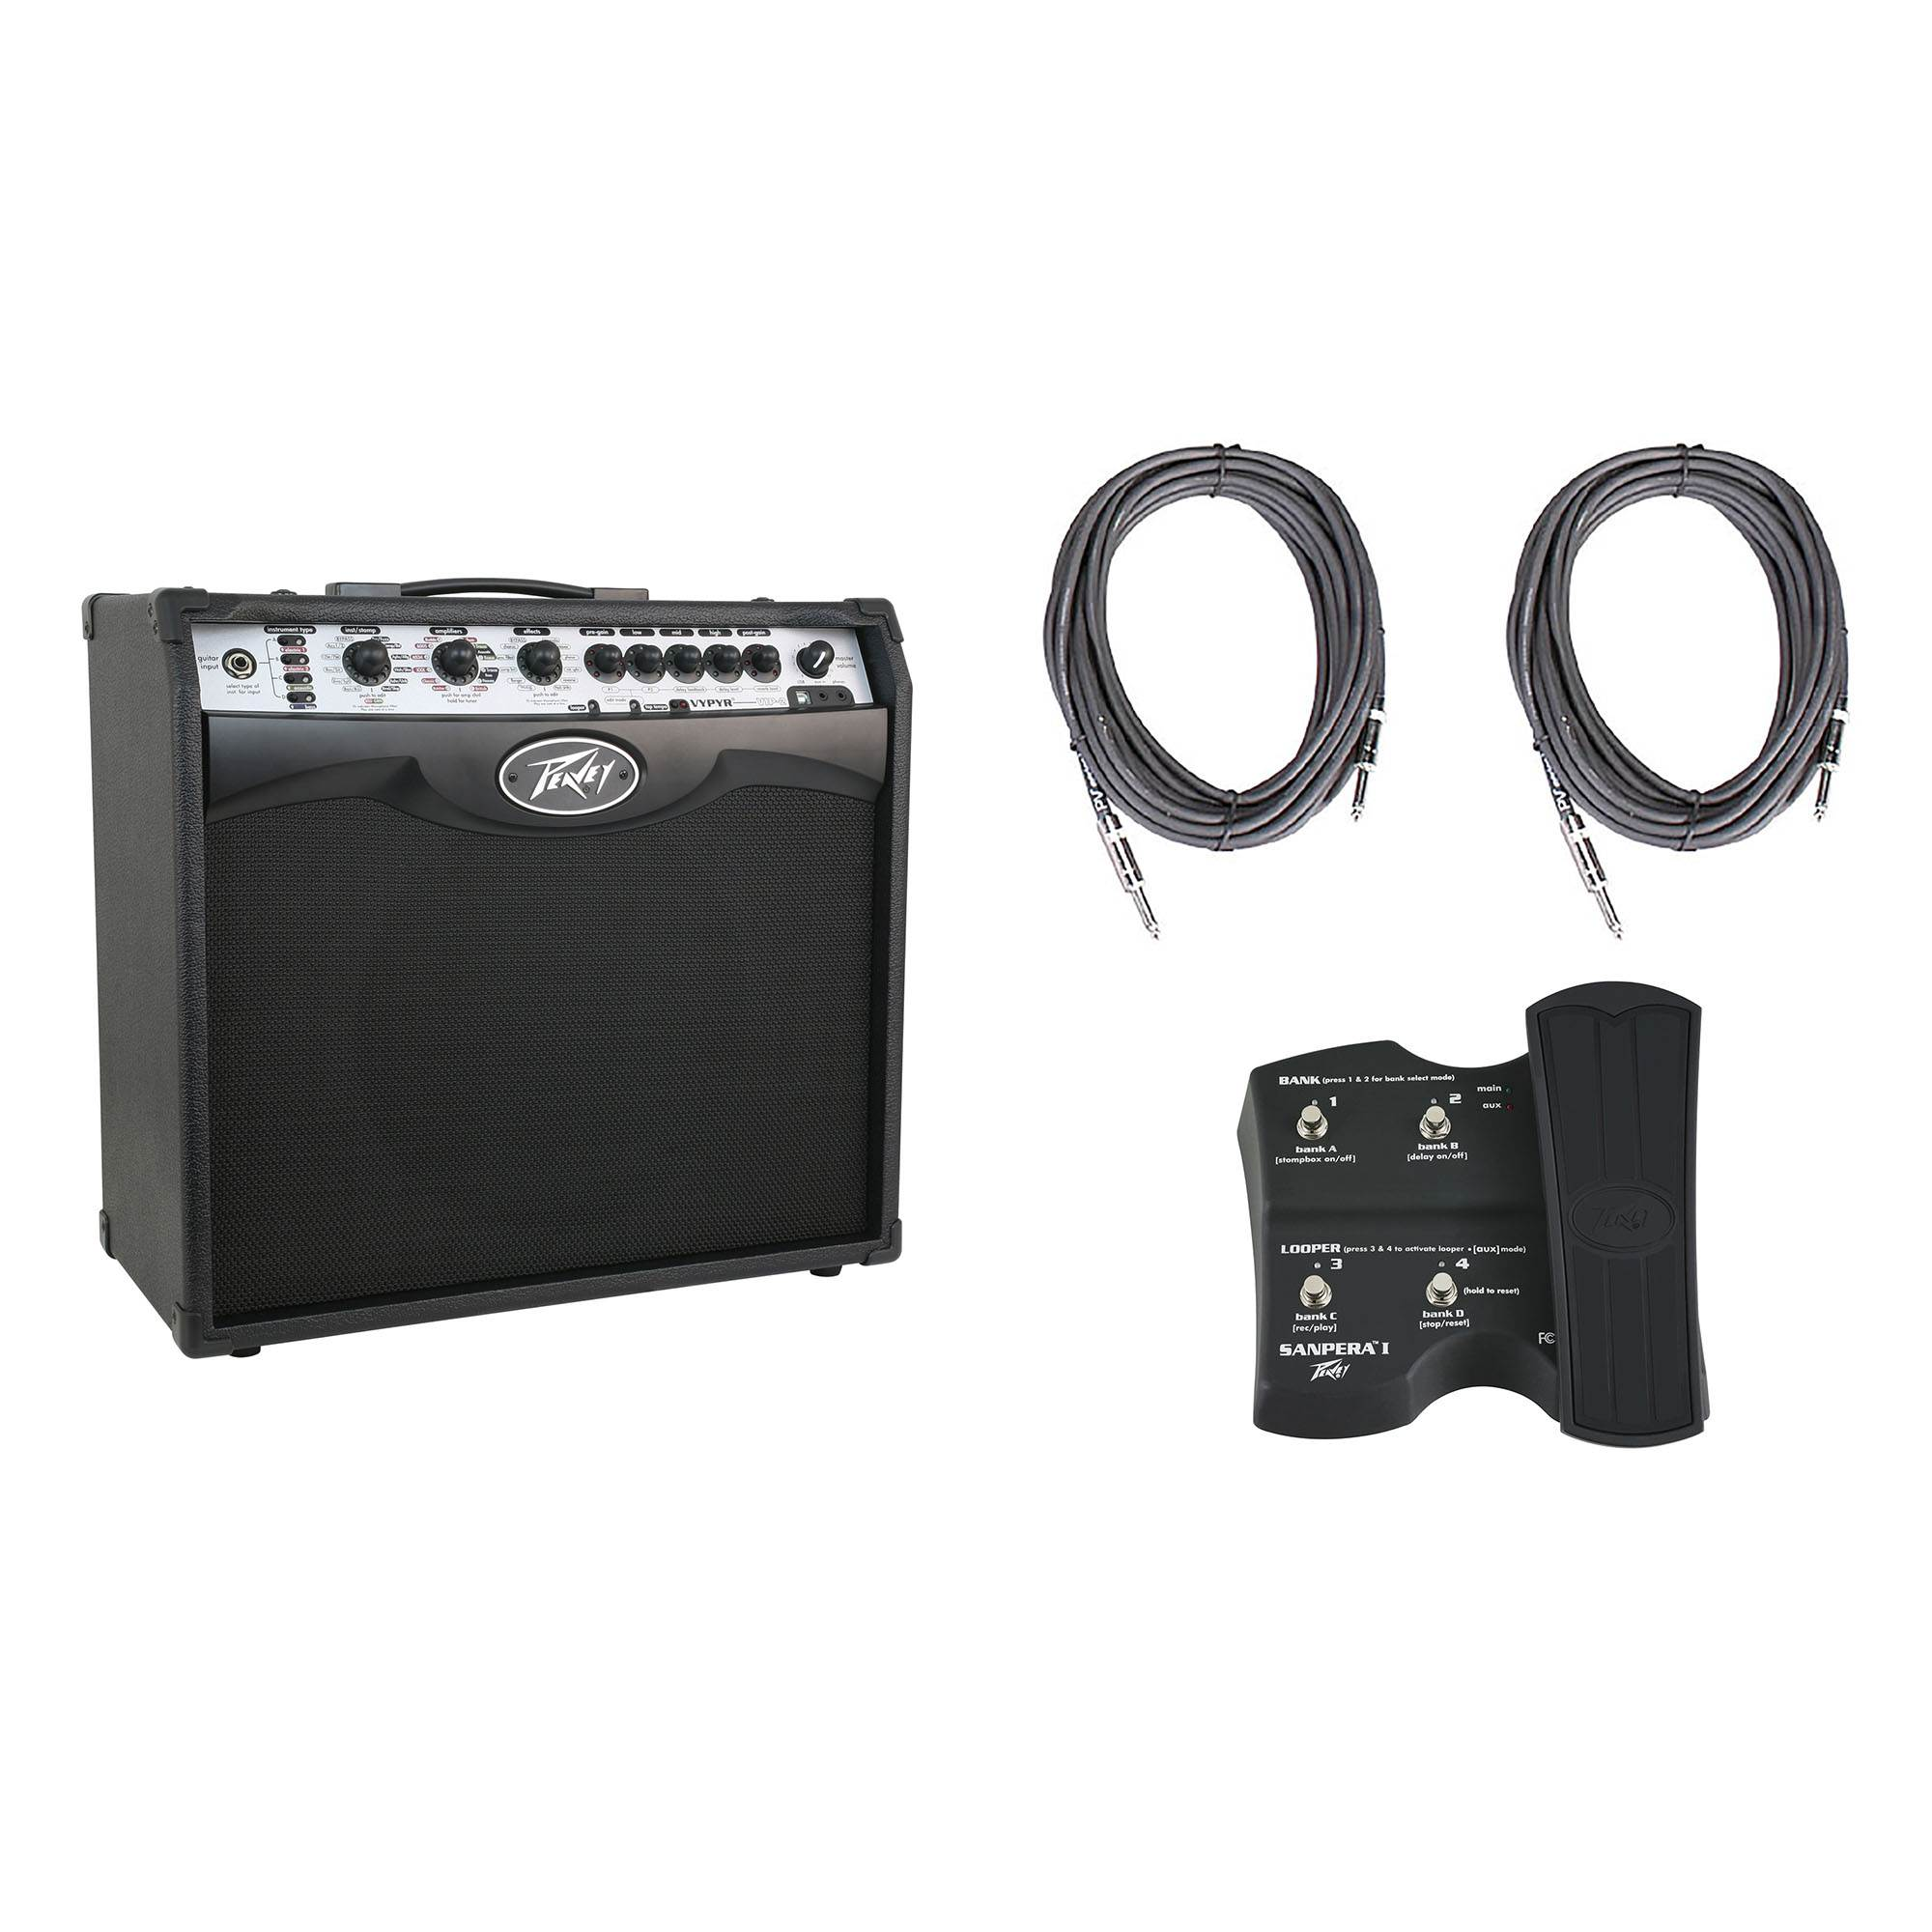 Sanpera I Foot Controller 2 10 Cables Peavey Vypyr VIP 2 Combo Modeling Amp